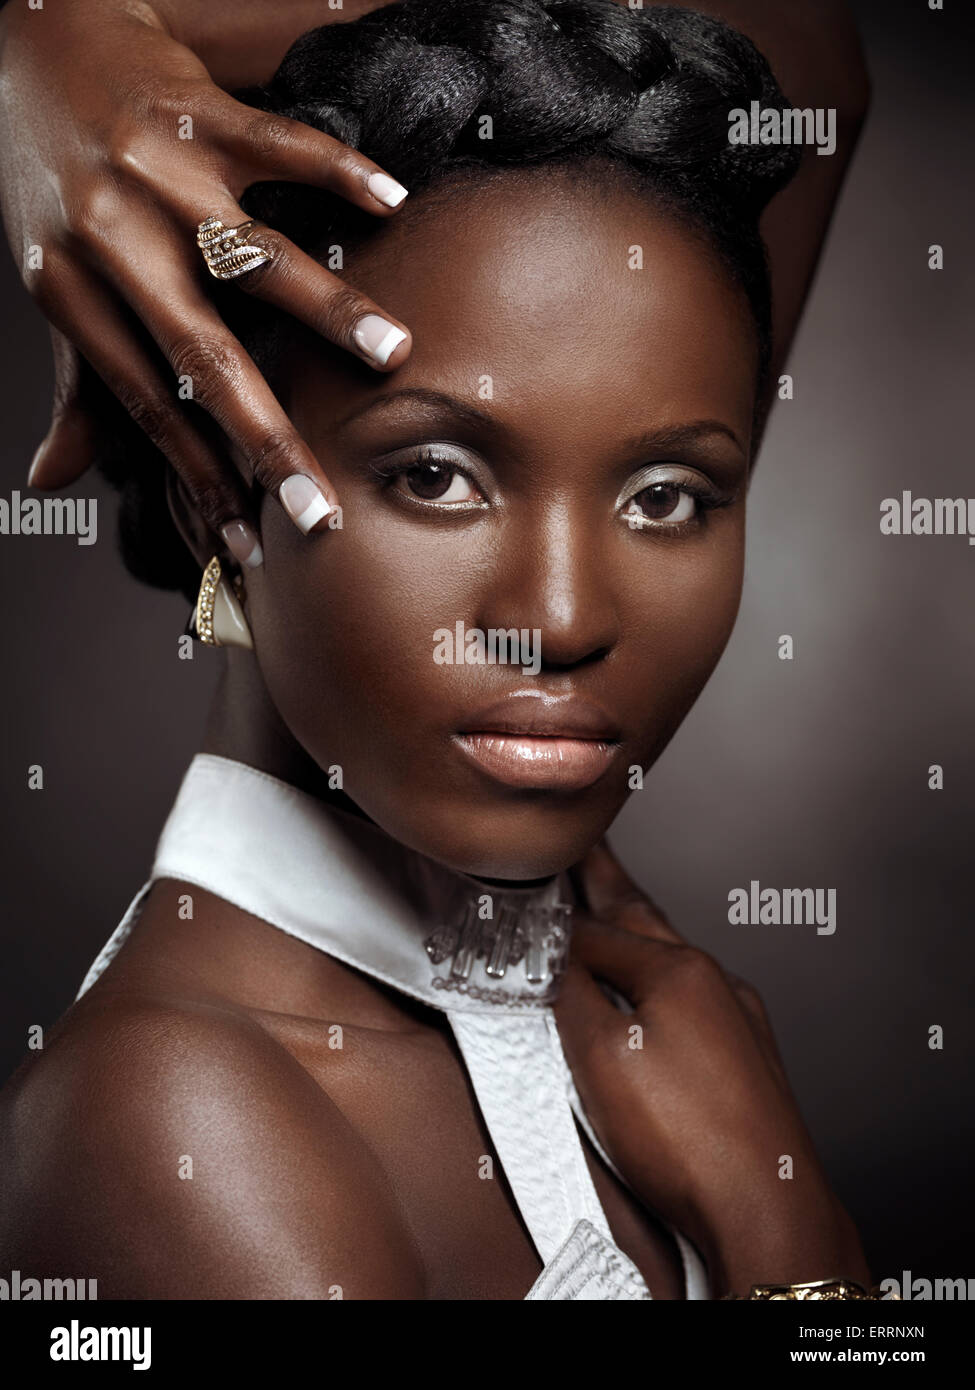 Beautiful young african-american woman artistic beauty portrait isolated on black background - Stock Image